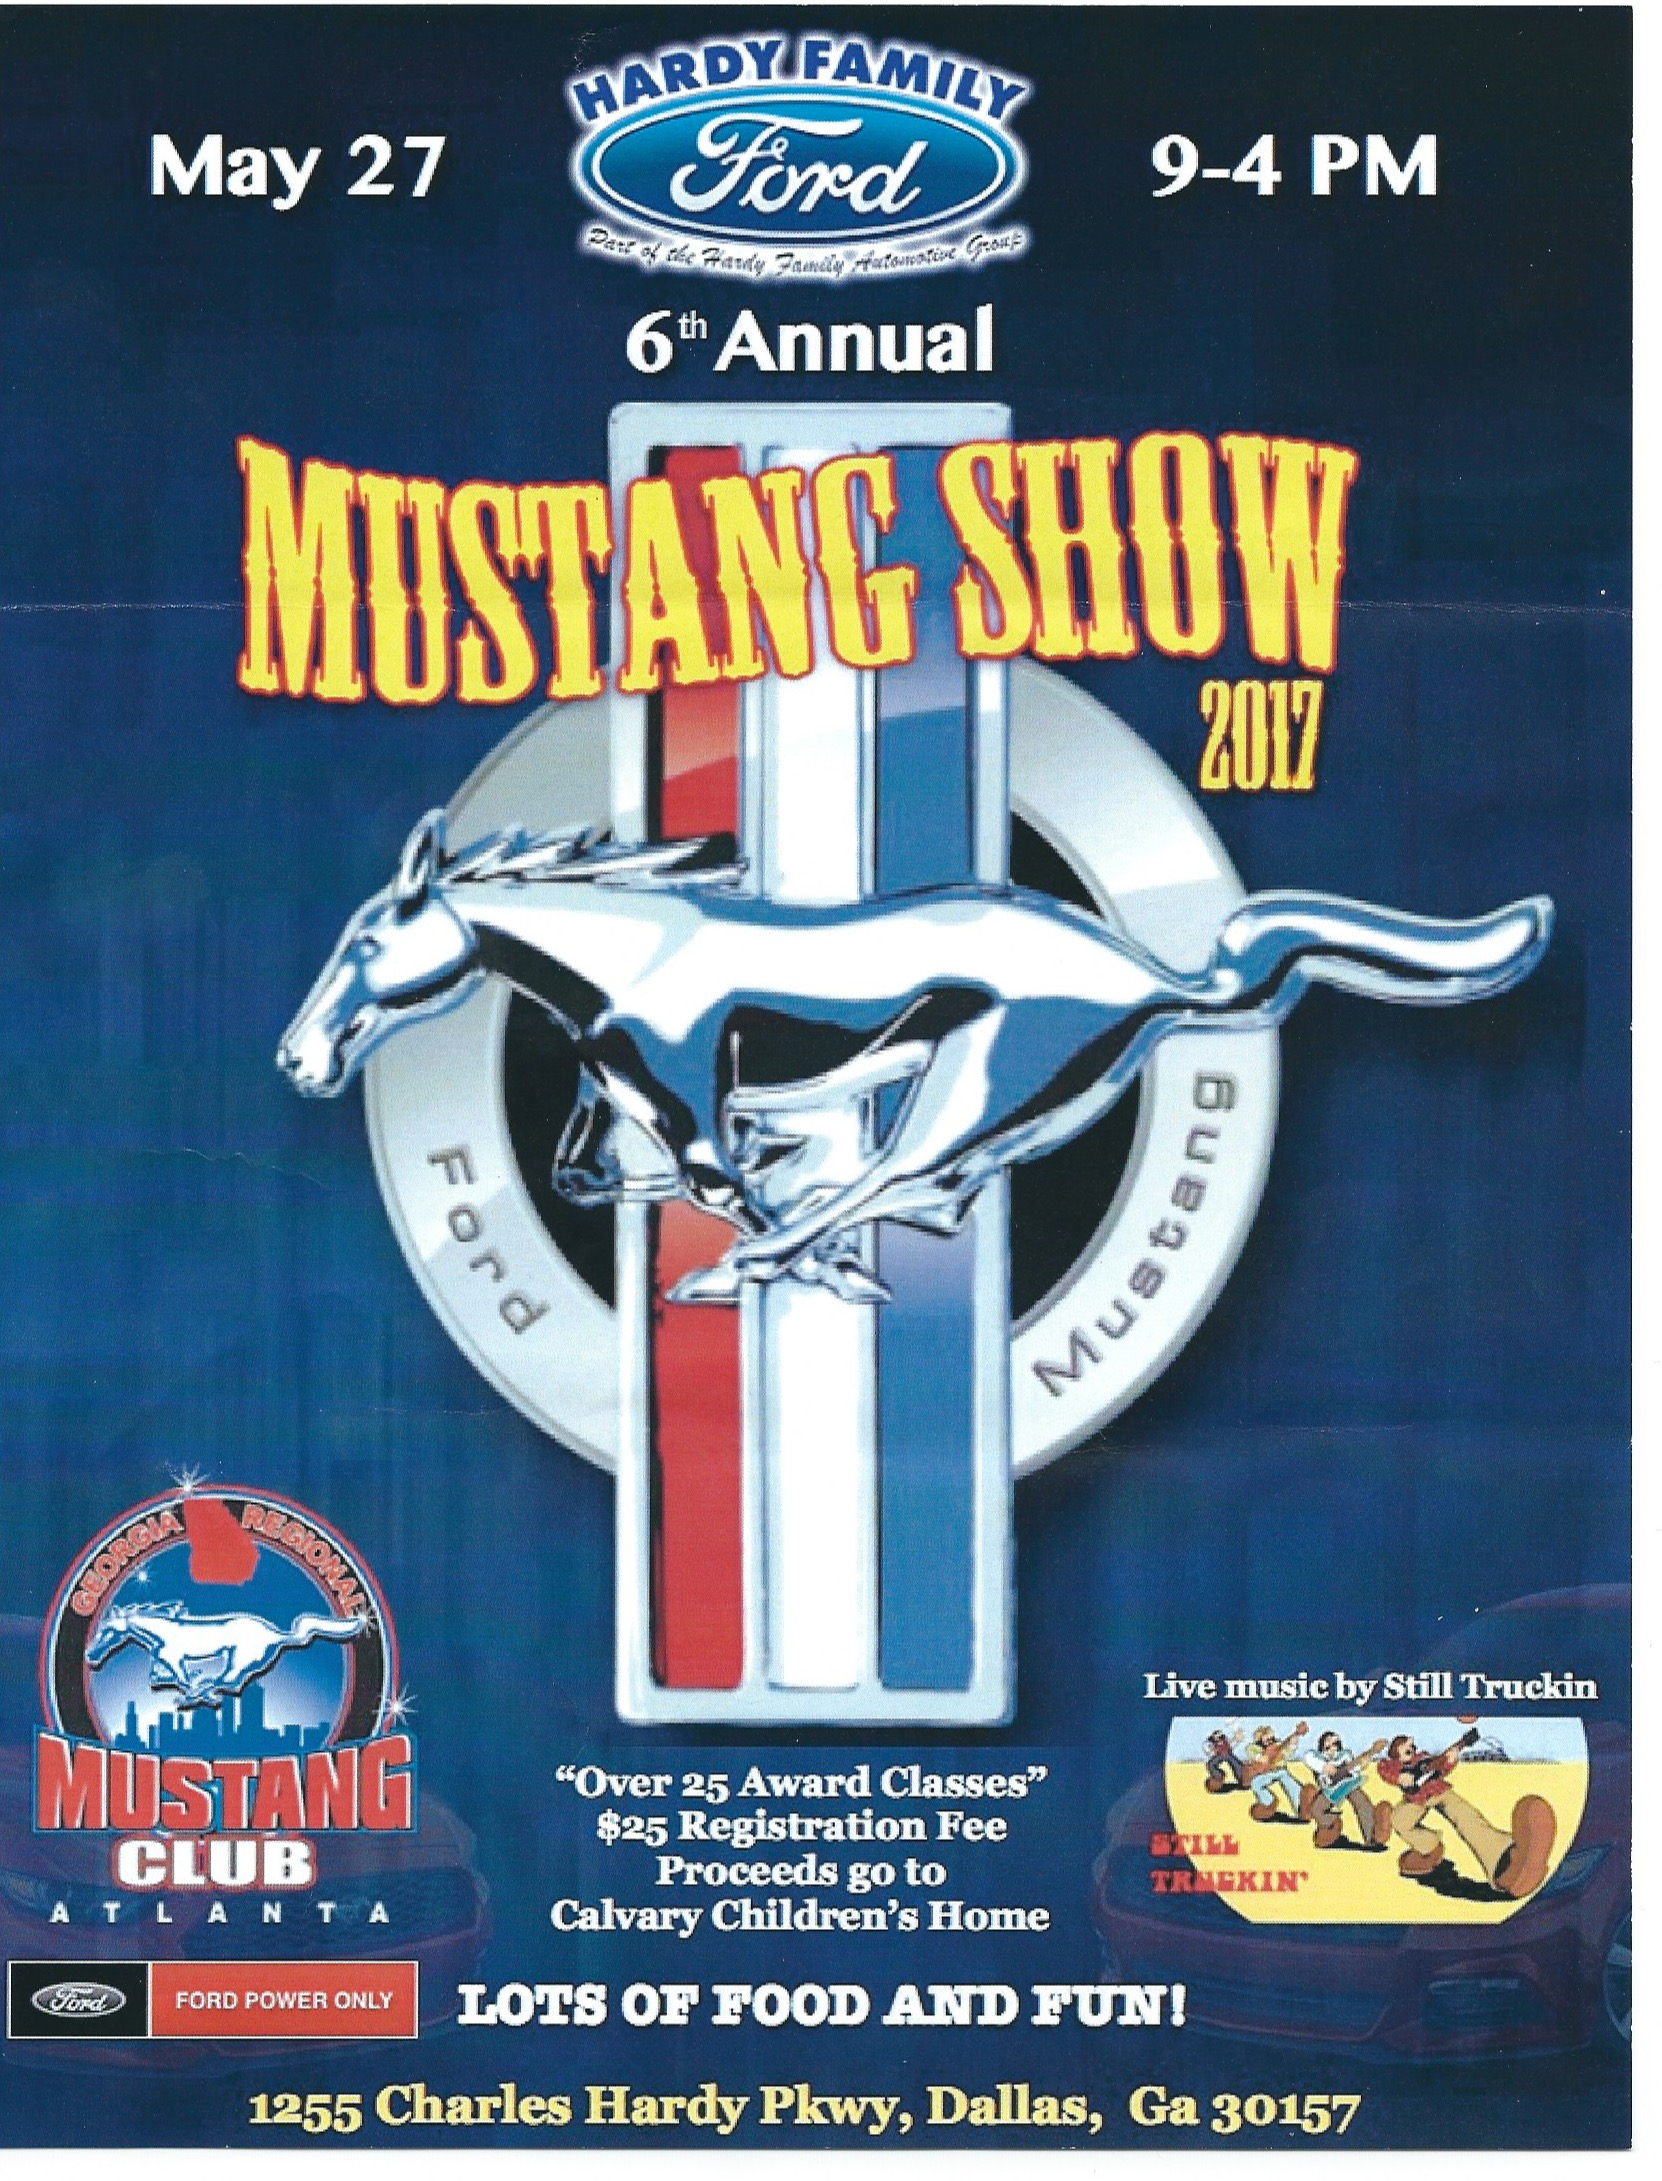 5 27 Hardy Family Ford Mustang Car Show Dallas Ga Northeast